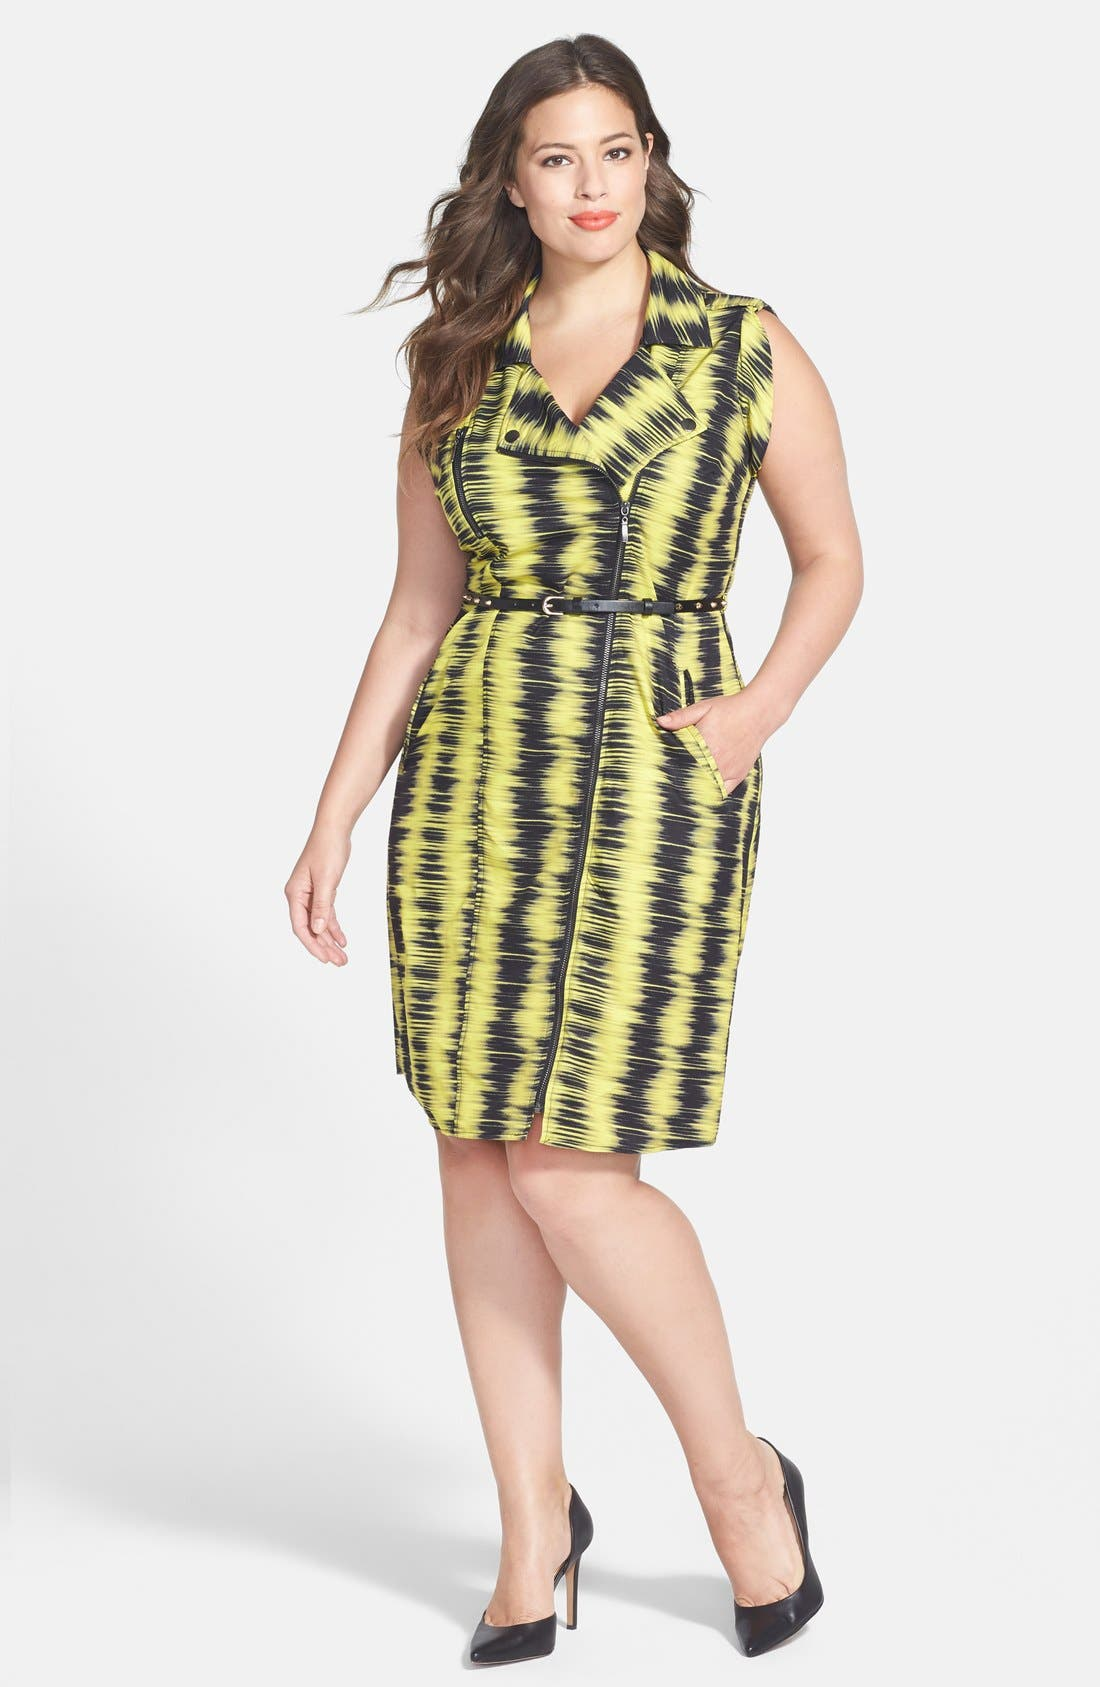 Alternate Image 1 Selected - City Chic 'Feel the Beat' Zip Front Dress (Plus Size)